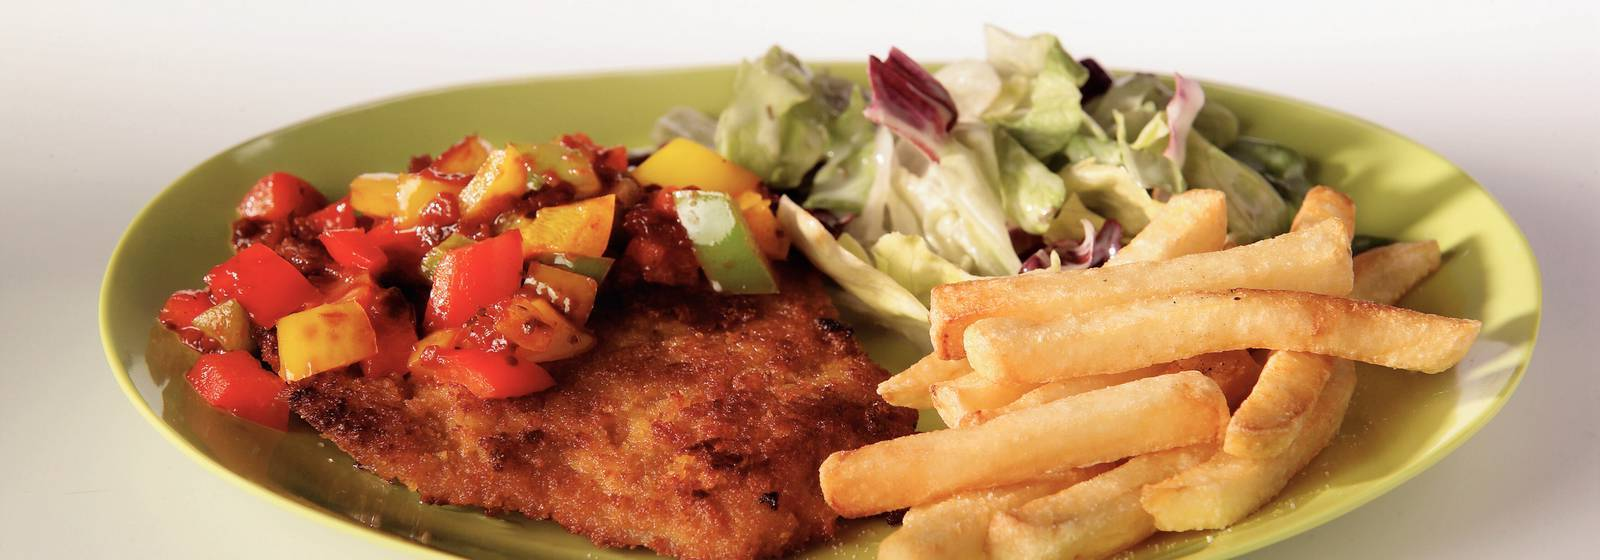 Schnitzel with paprika sauce and French fries